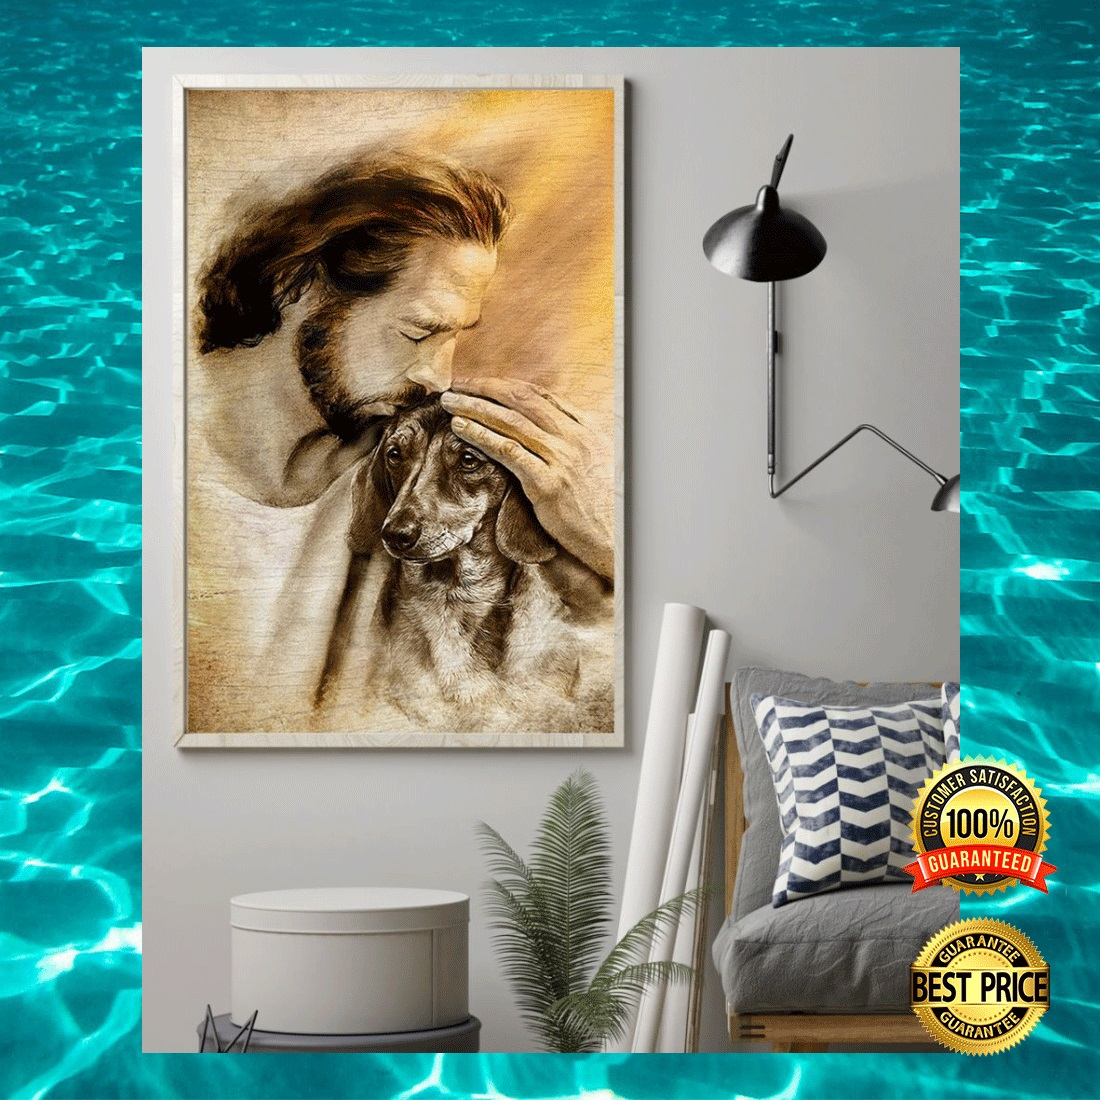 JESUS WITH LOVELY DACHSHUND POSTER 3